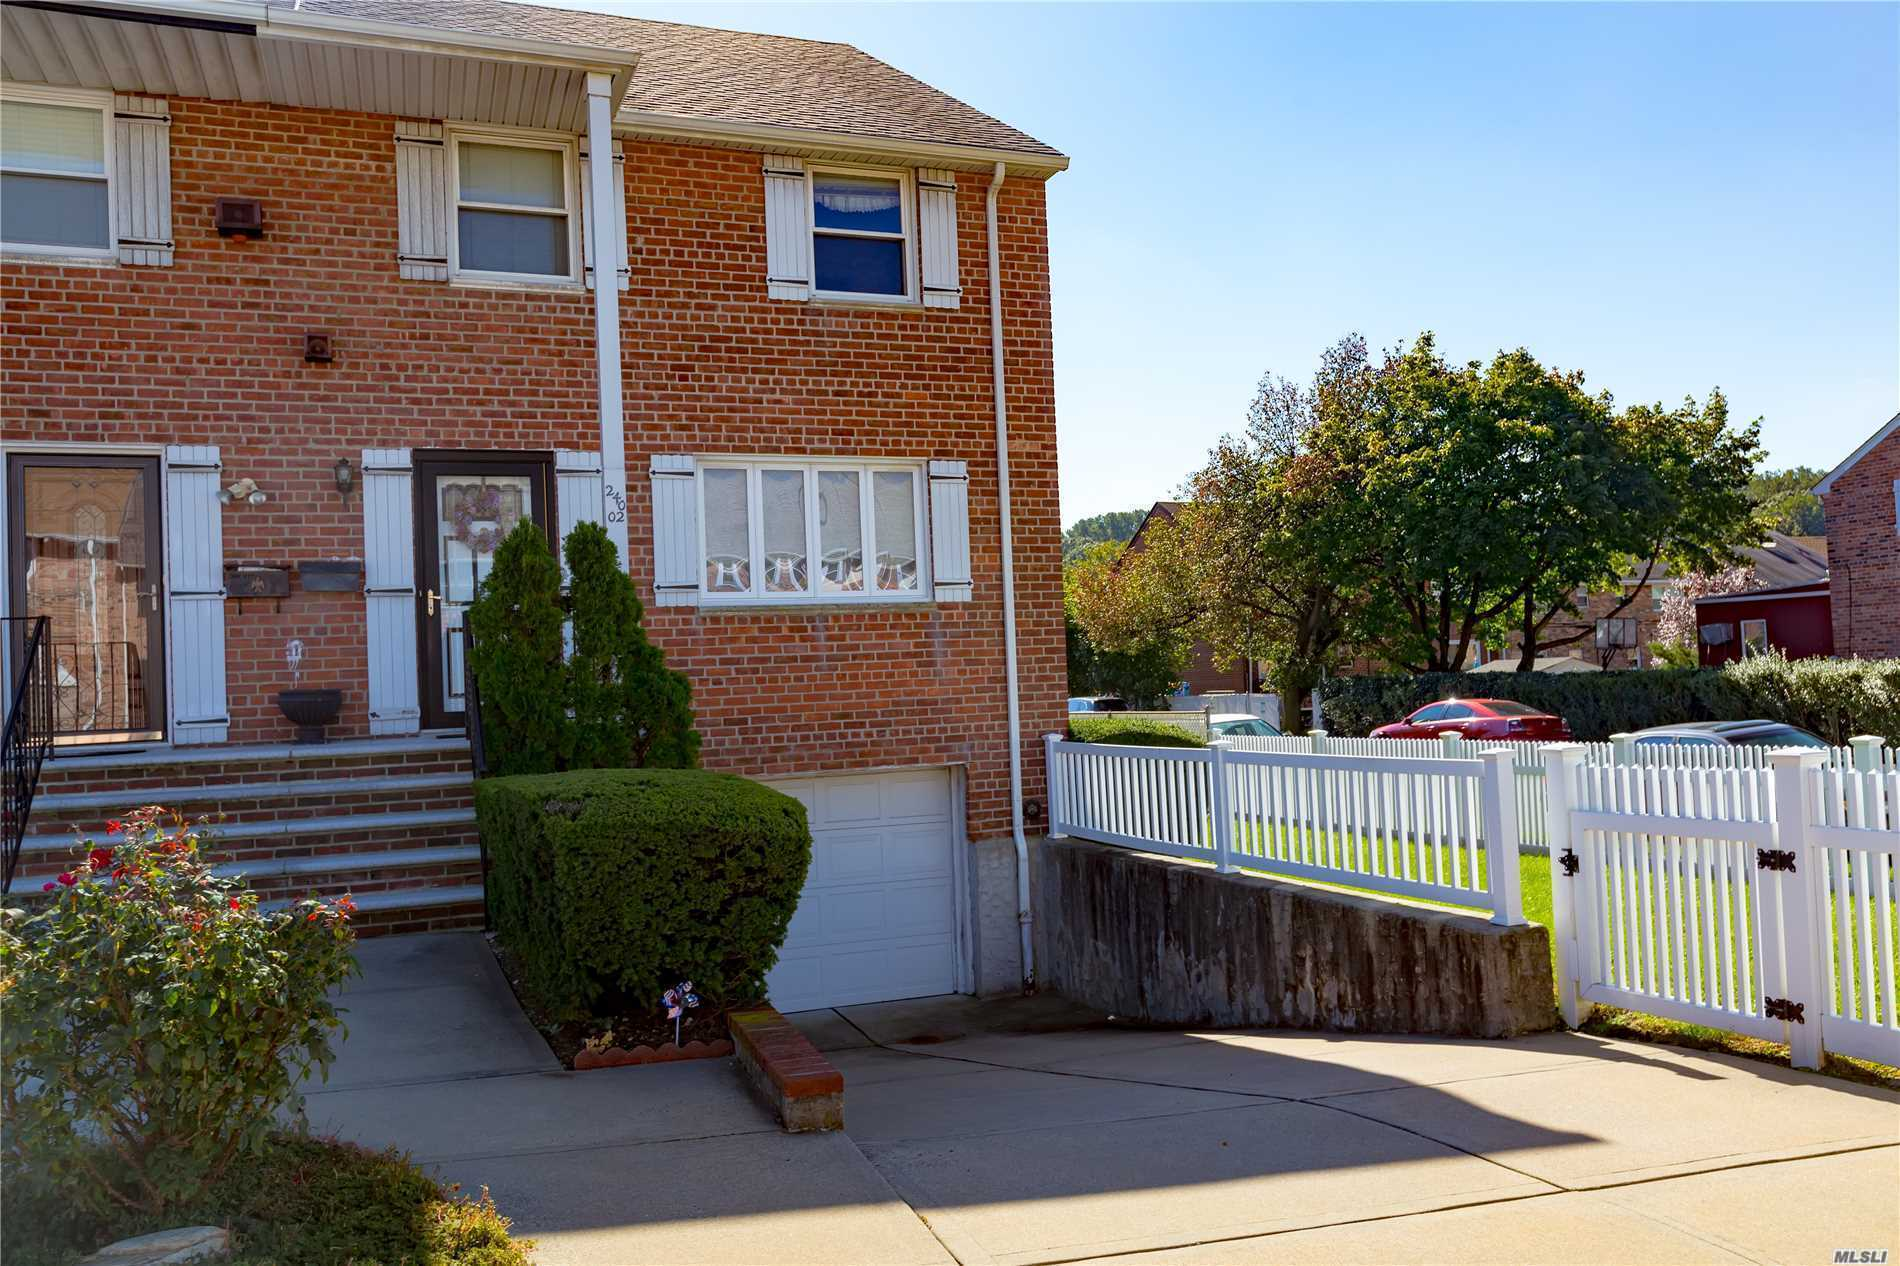 Stunning Corner Property With Great School District, Elementary Ps 221, Middle School Louis Paster, Benjamin Cardozo High Schoo.L Spacious Single Family Home, Located On A Conveinient And Quite Street. Huge Backyard, Large Bedrooms, Walking Distance To The Train Station. Lirr Cream Puff Line. 20 Min To Nyc.A Must See! Wont Last!